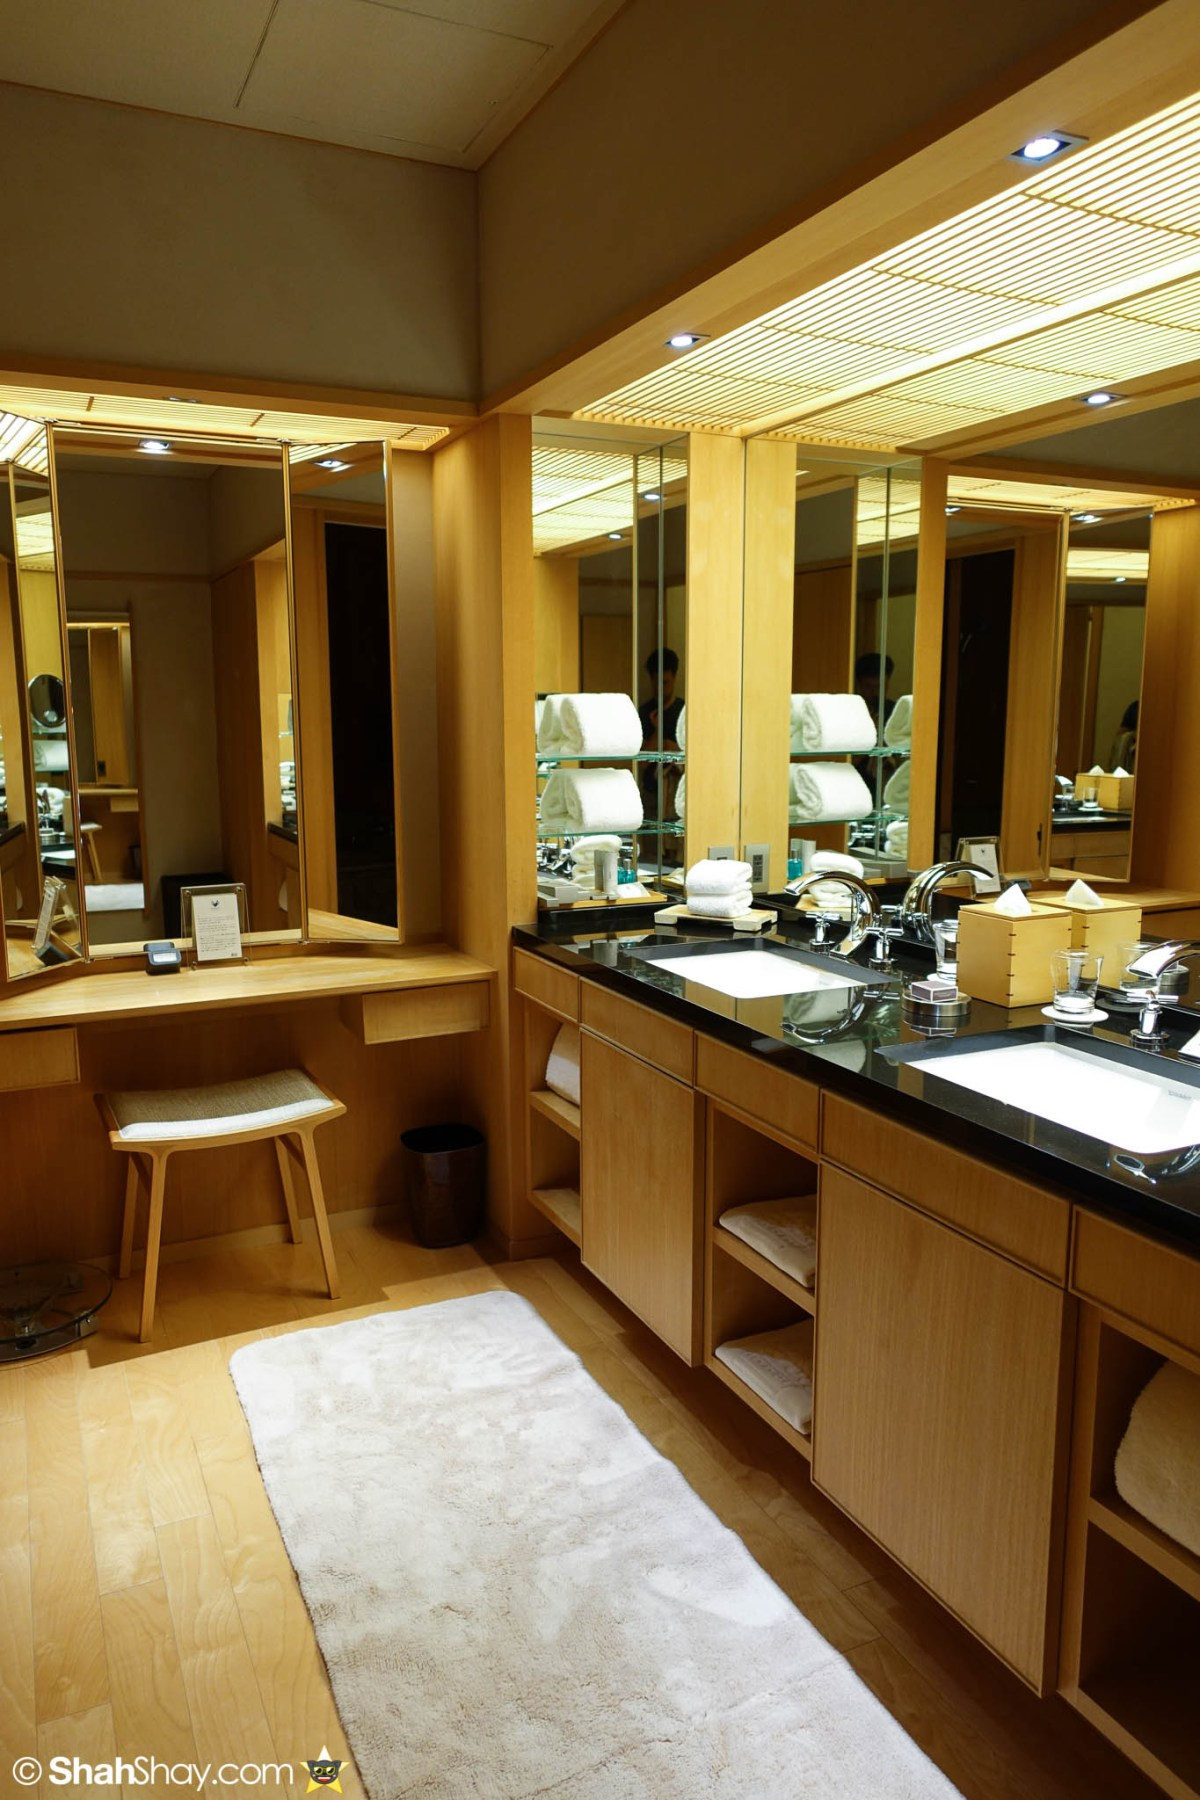 The Ritz-Carlton Tokyo Rooms - Modern Japanese Suite - Bathroom